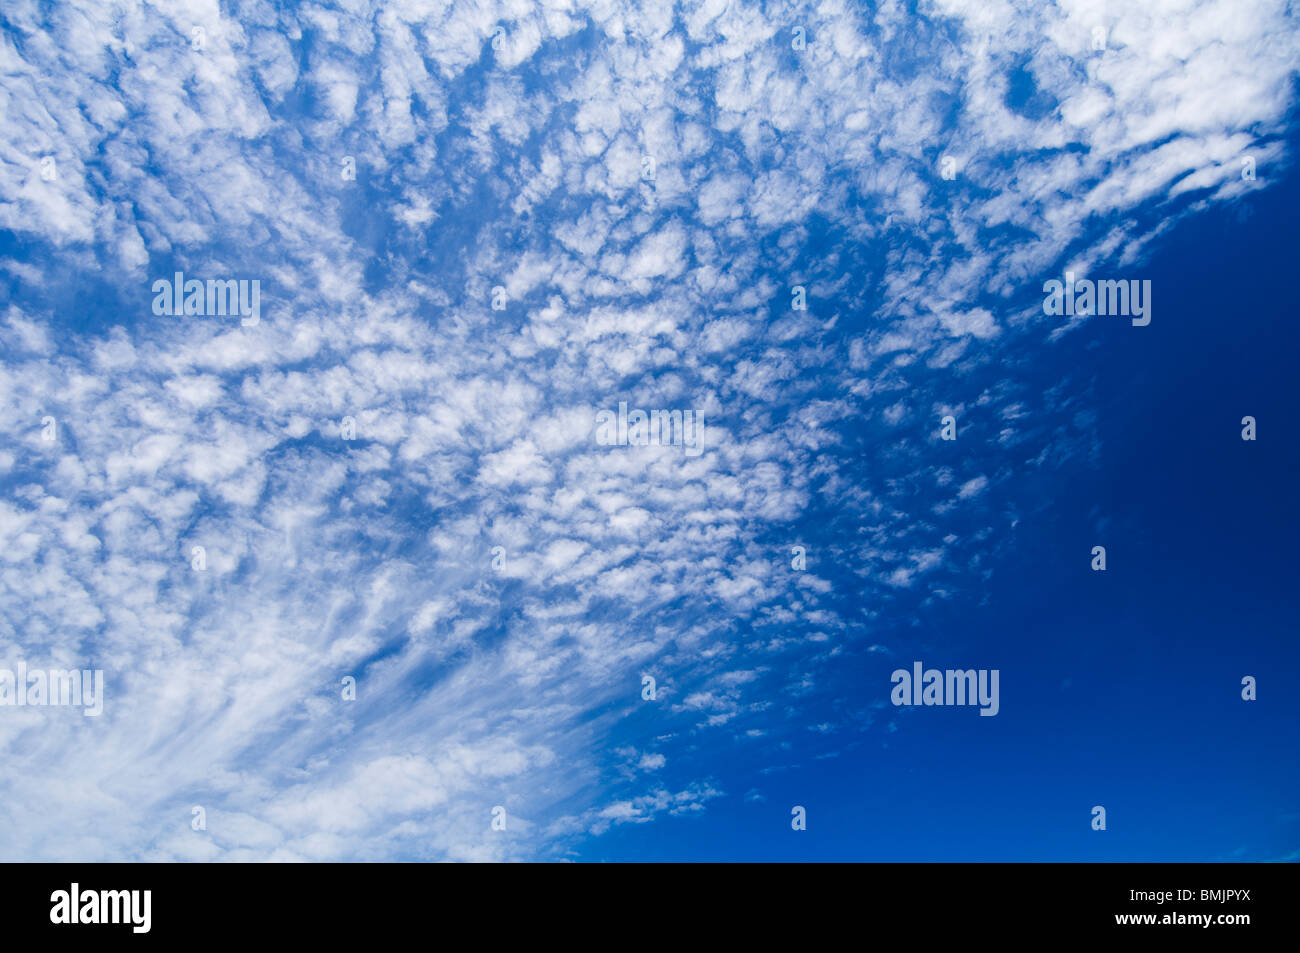 Clouds on a blue sky - Stock Image